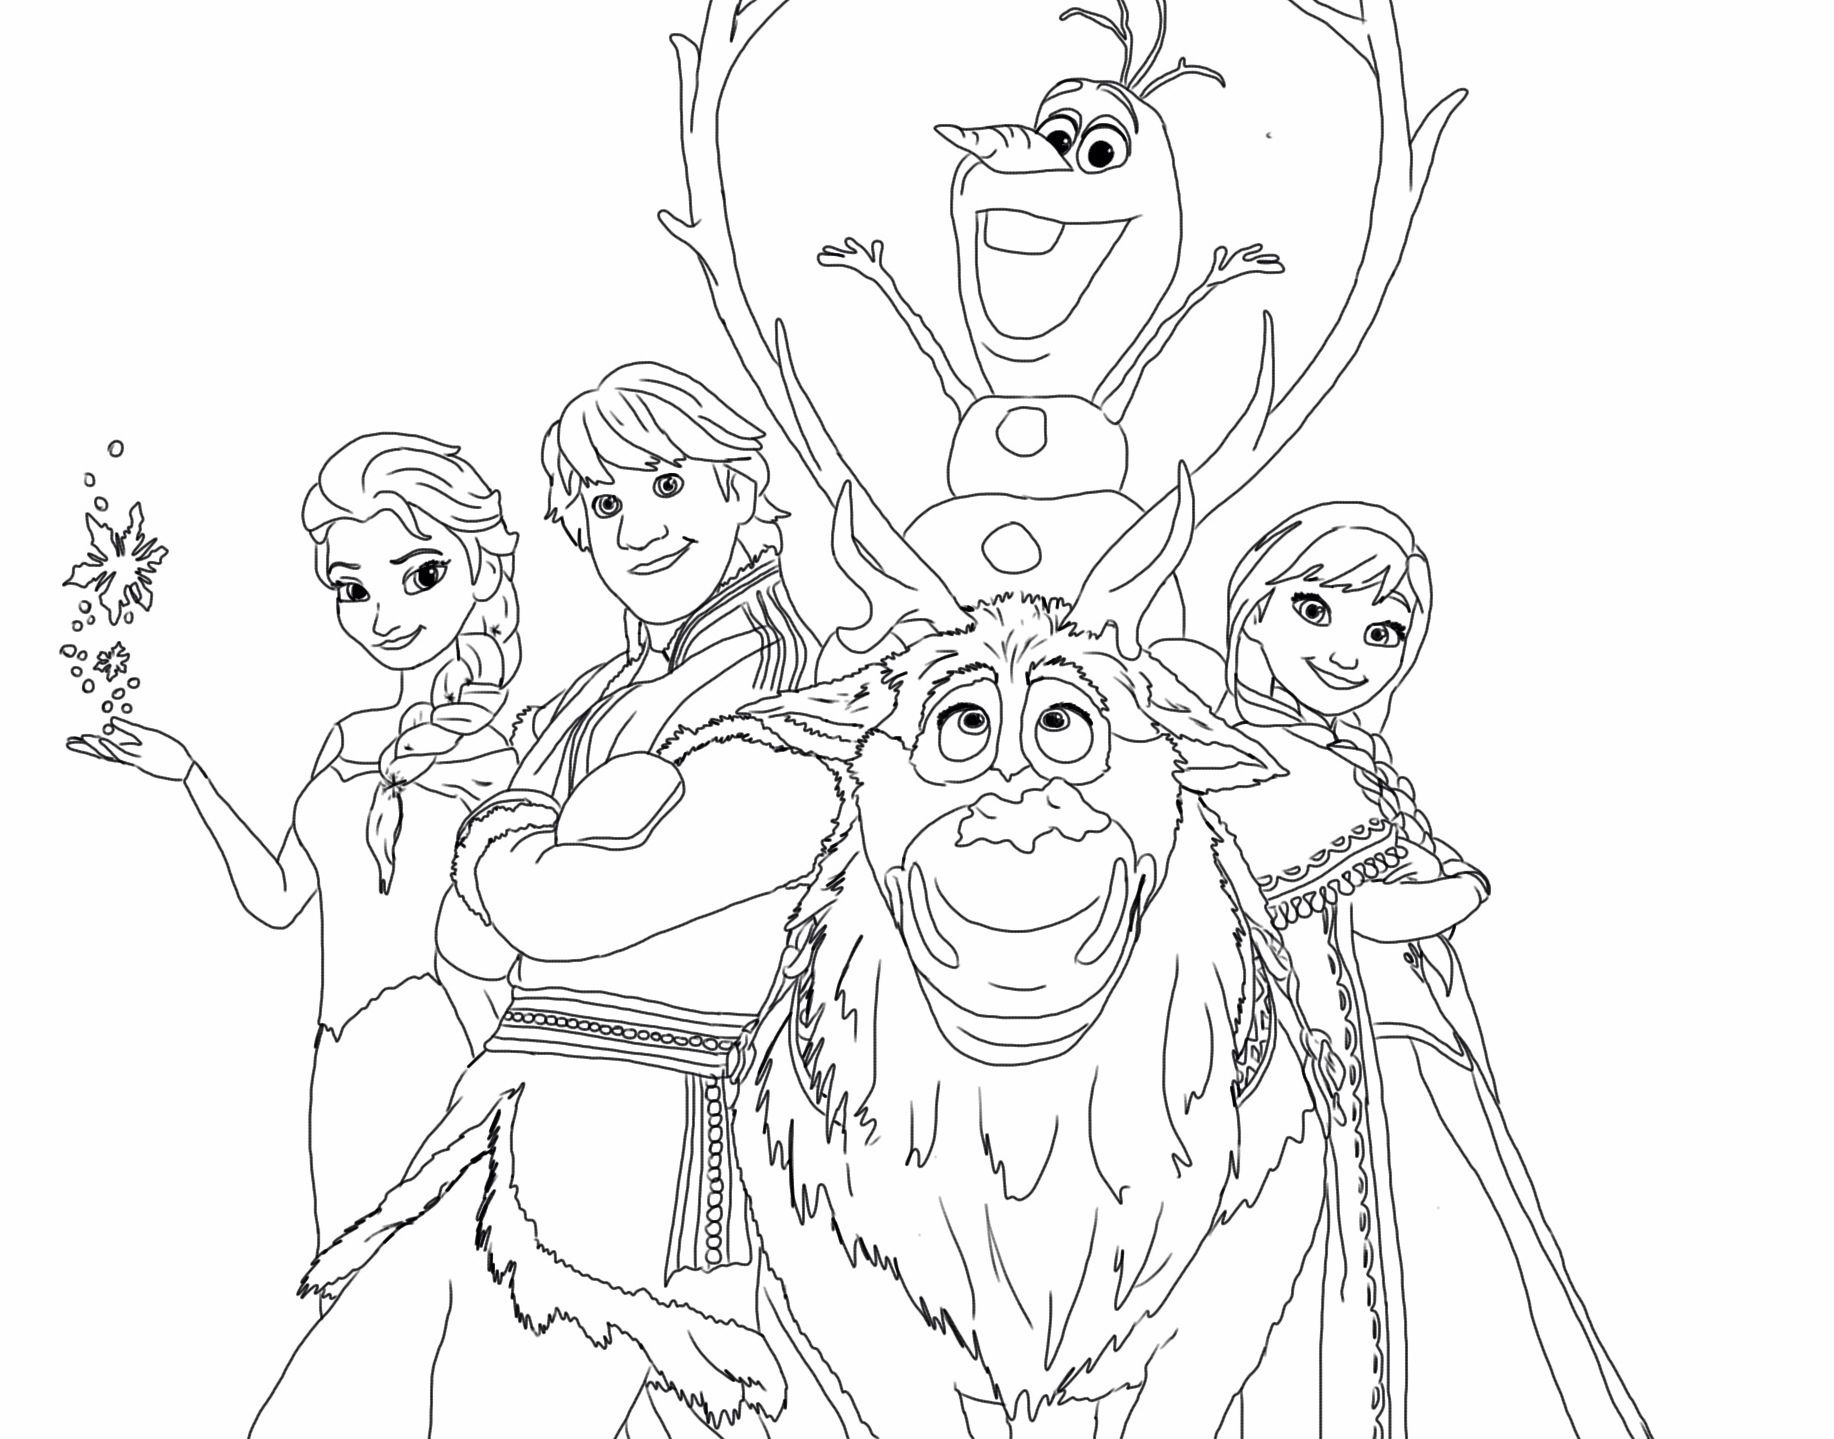 disney drawing characters frozen characters drawing at paintingvalleycom explore drawing characters disney